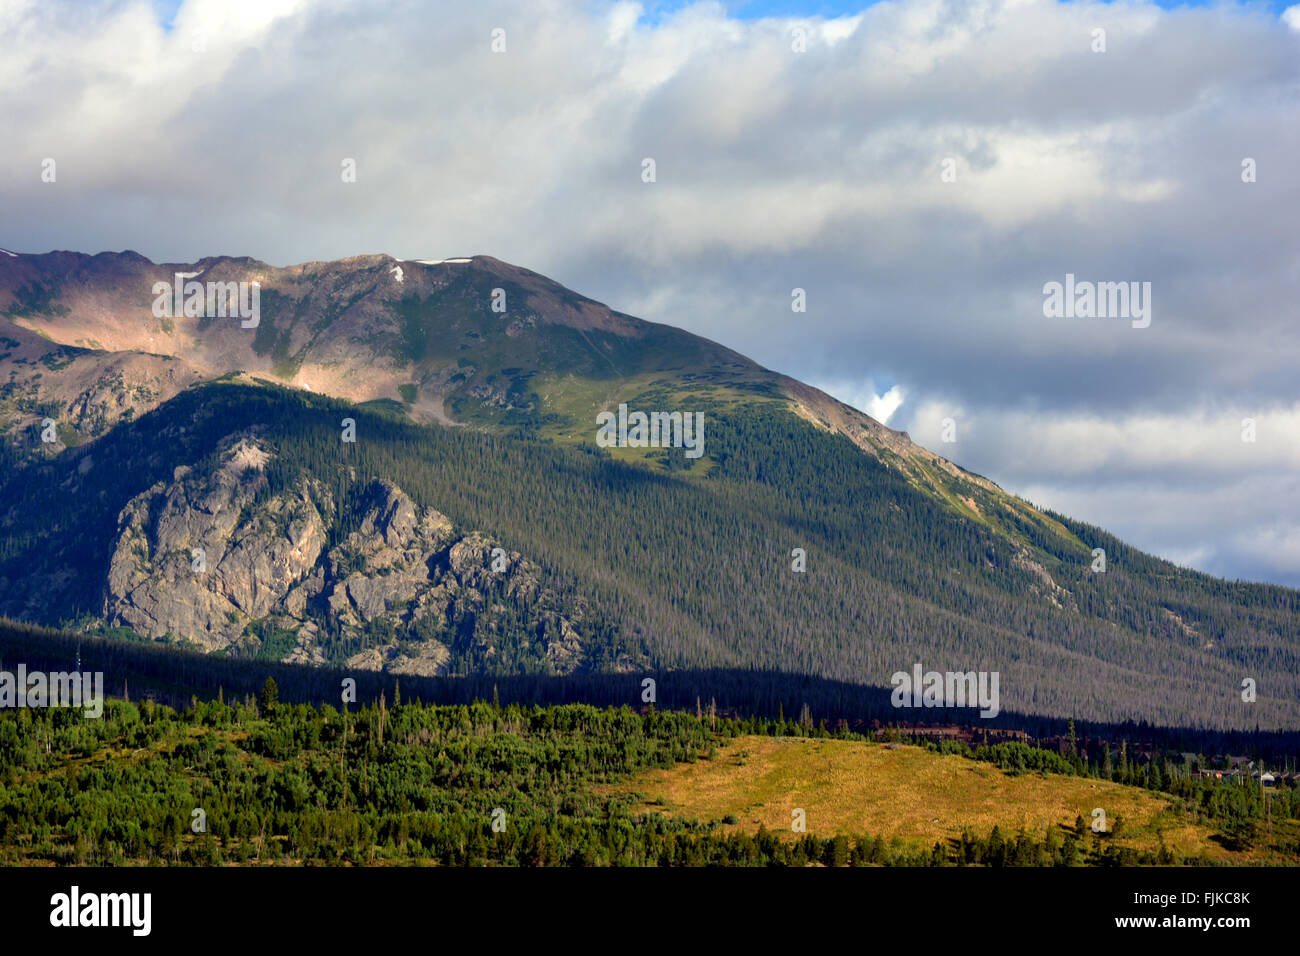 Rock Mountain at Dawn with Trees with Permafrost - Stock Image